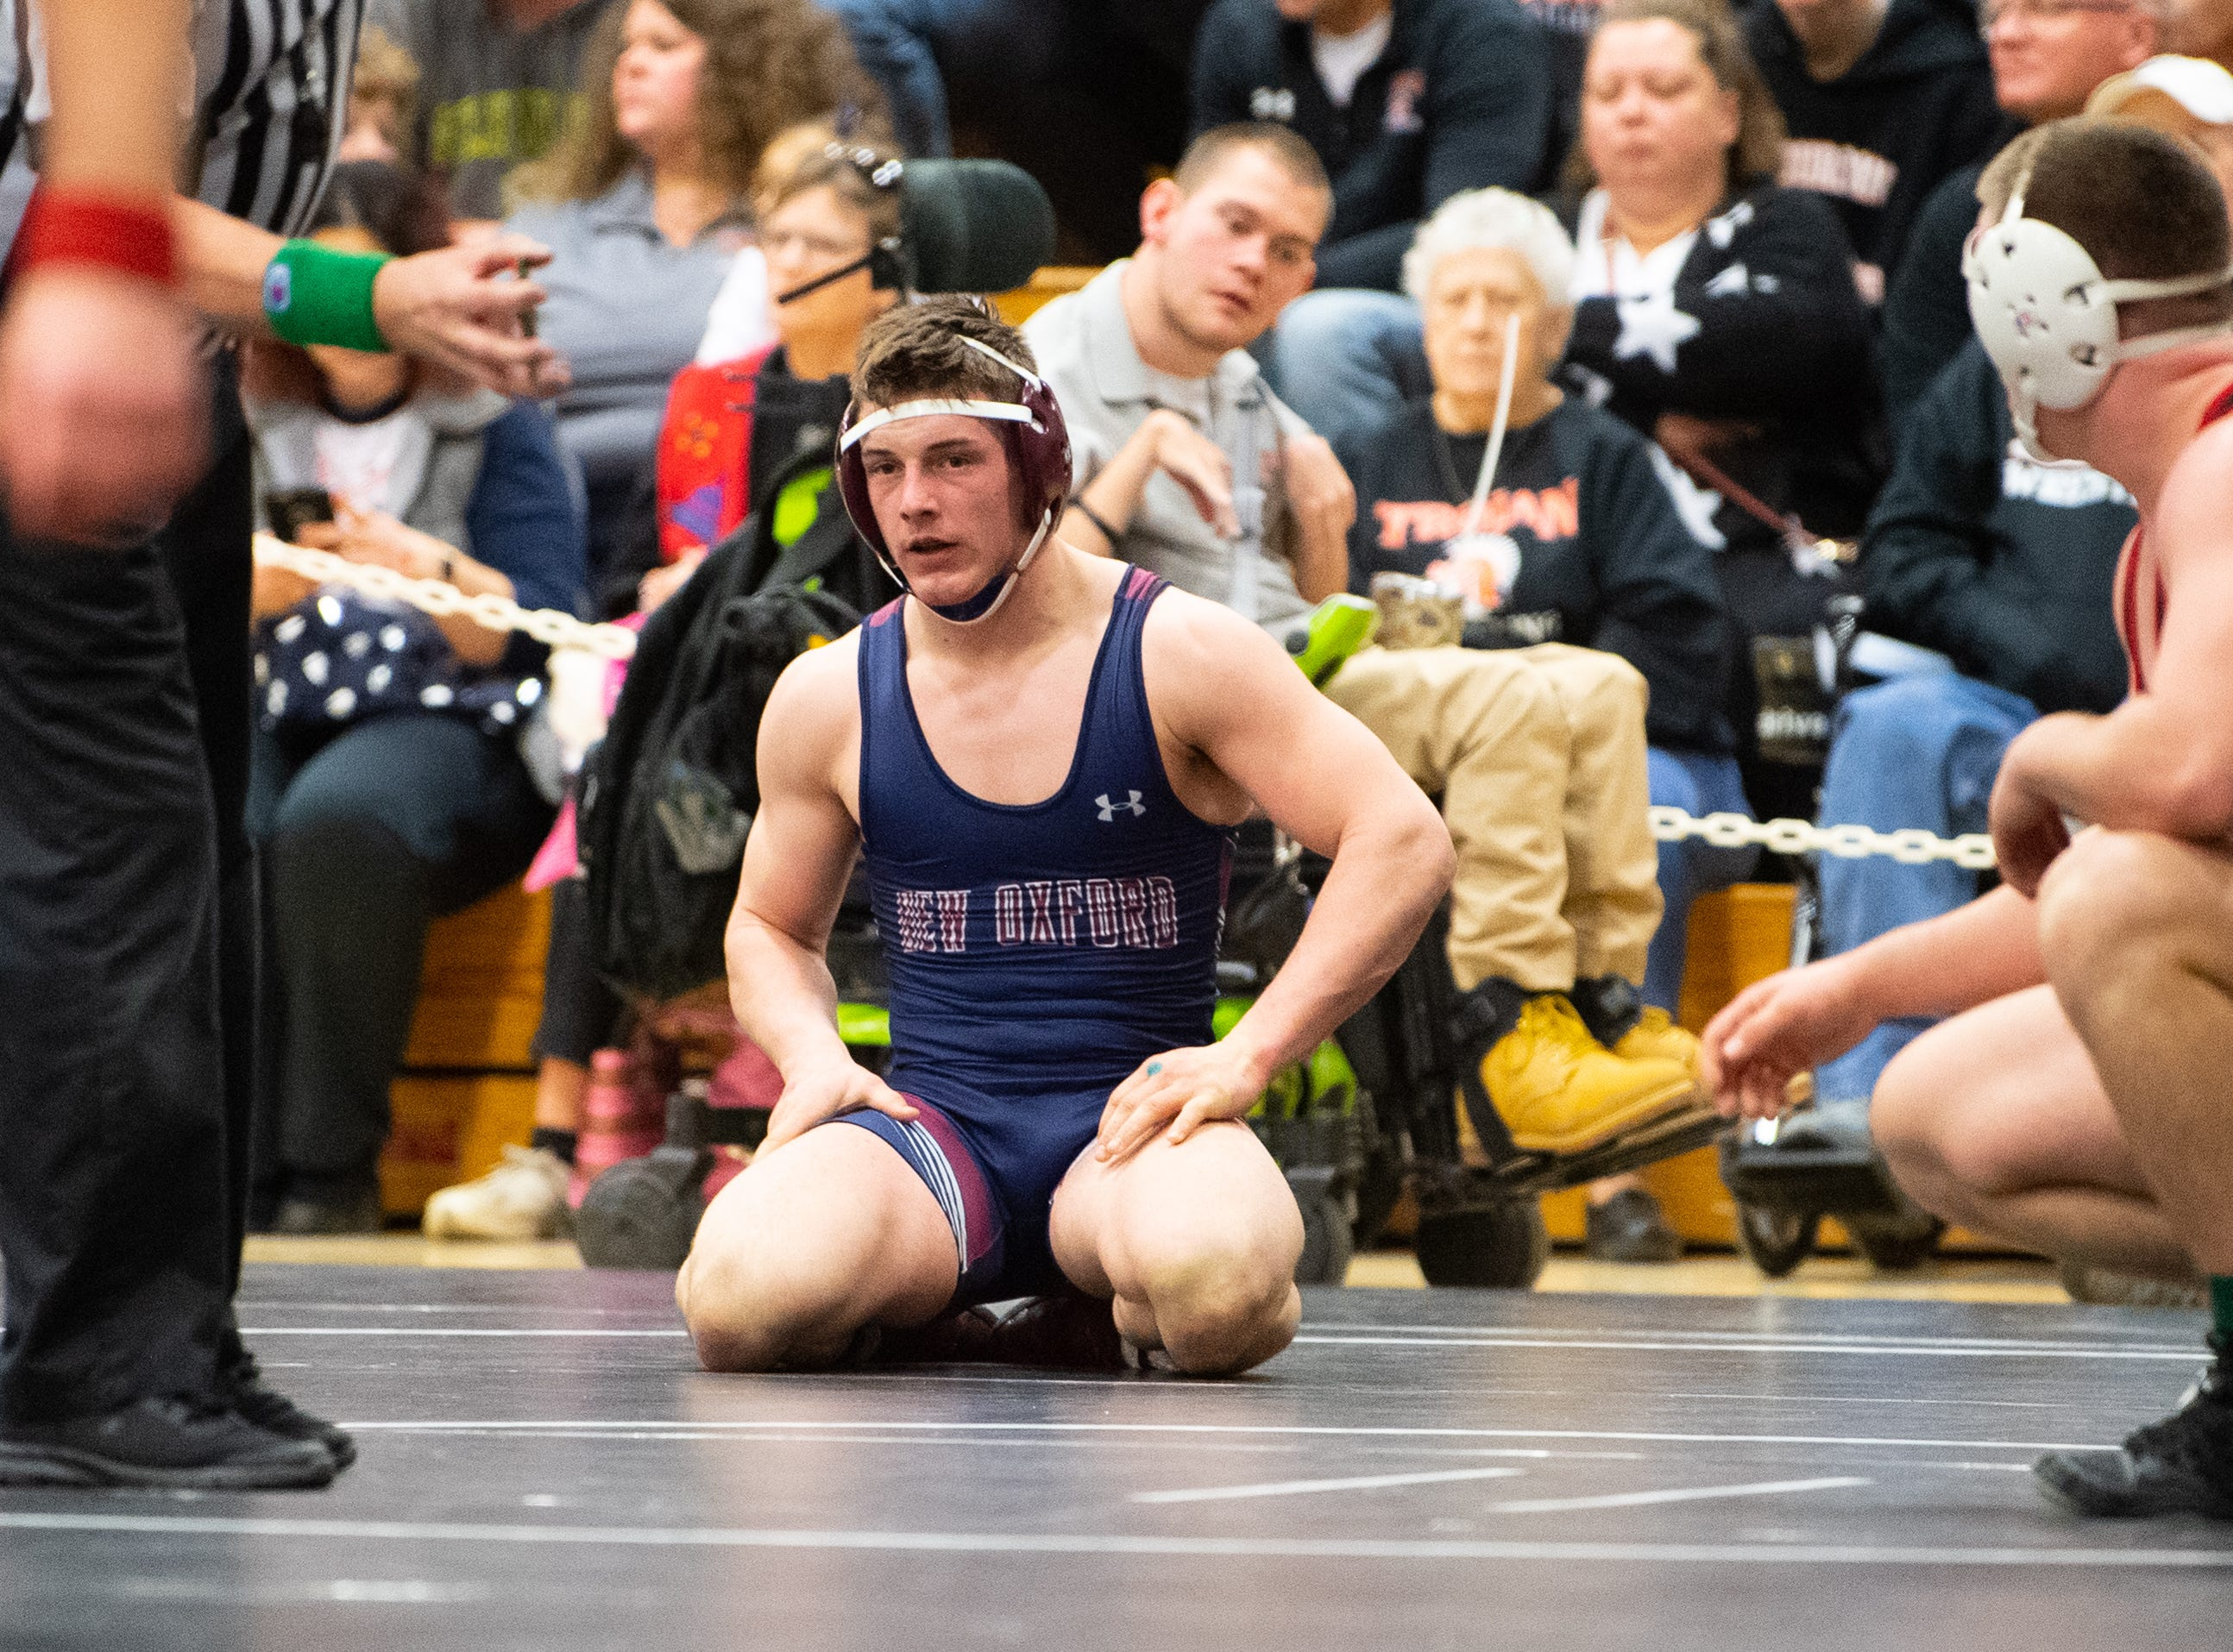 Dylan Forbes of New Oxford thinks about his next move during the PIAA District 3 Section IV Wrestling Championships, Saturday, February 16, 2019 at South Western High School.